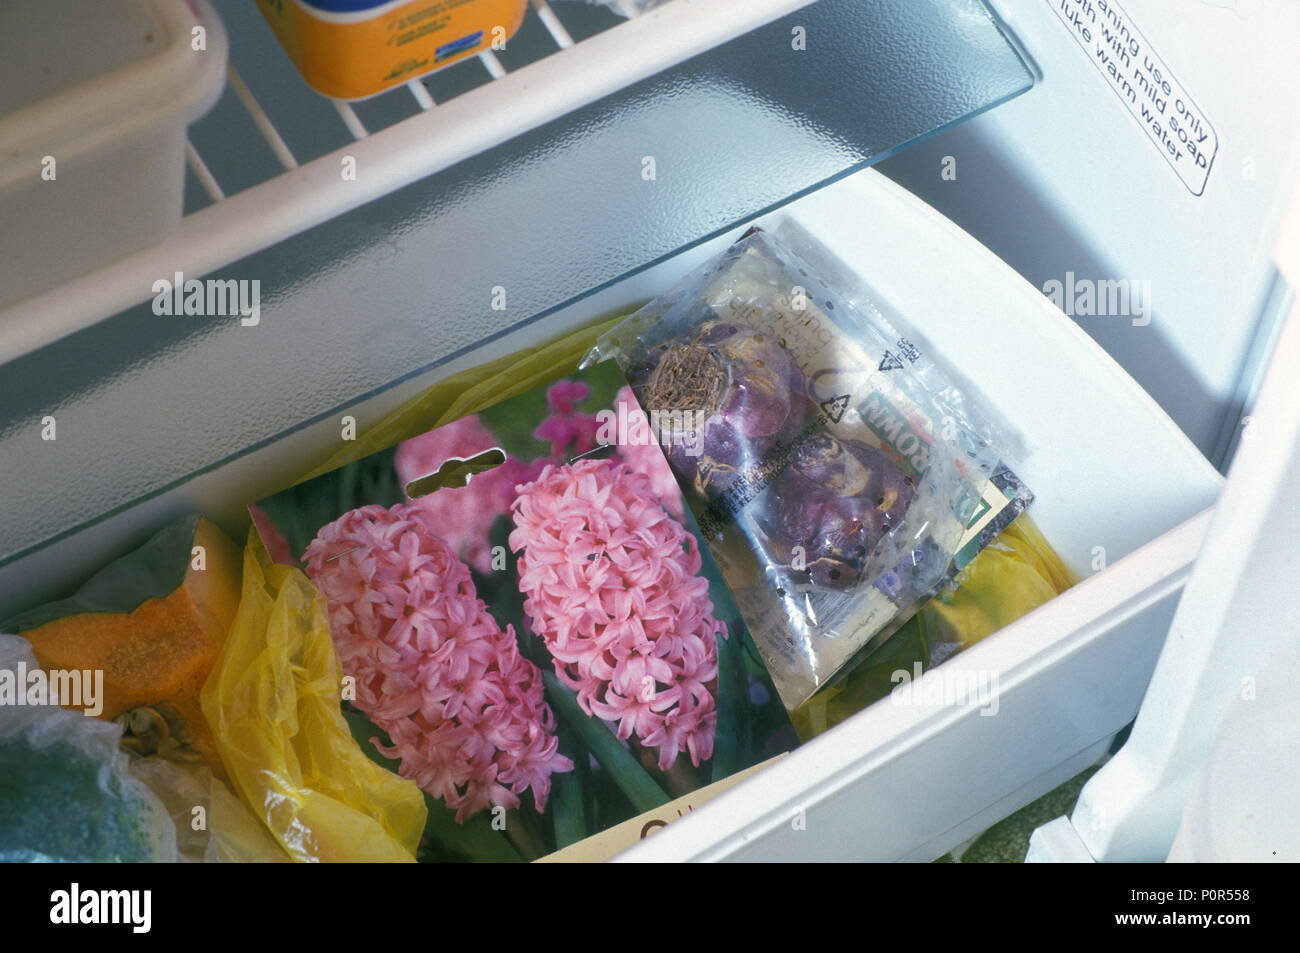 STORING HYACINTH BULBS IN CRISPER DRAWER OF FRIDGE. Before planting hyacinths put them into the crisper part of the fridge. Stock Photo